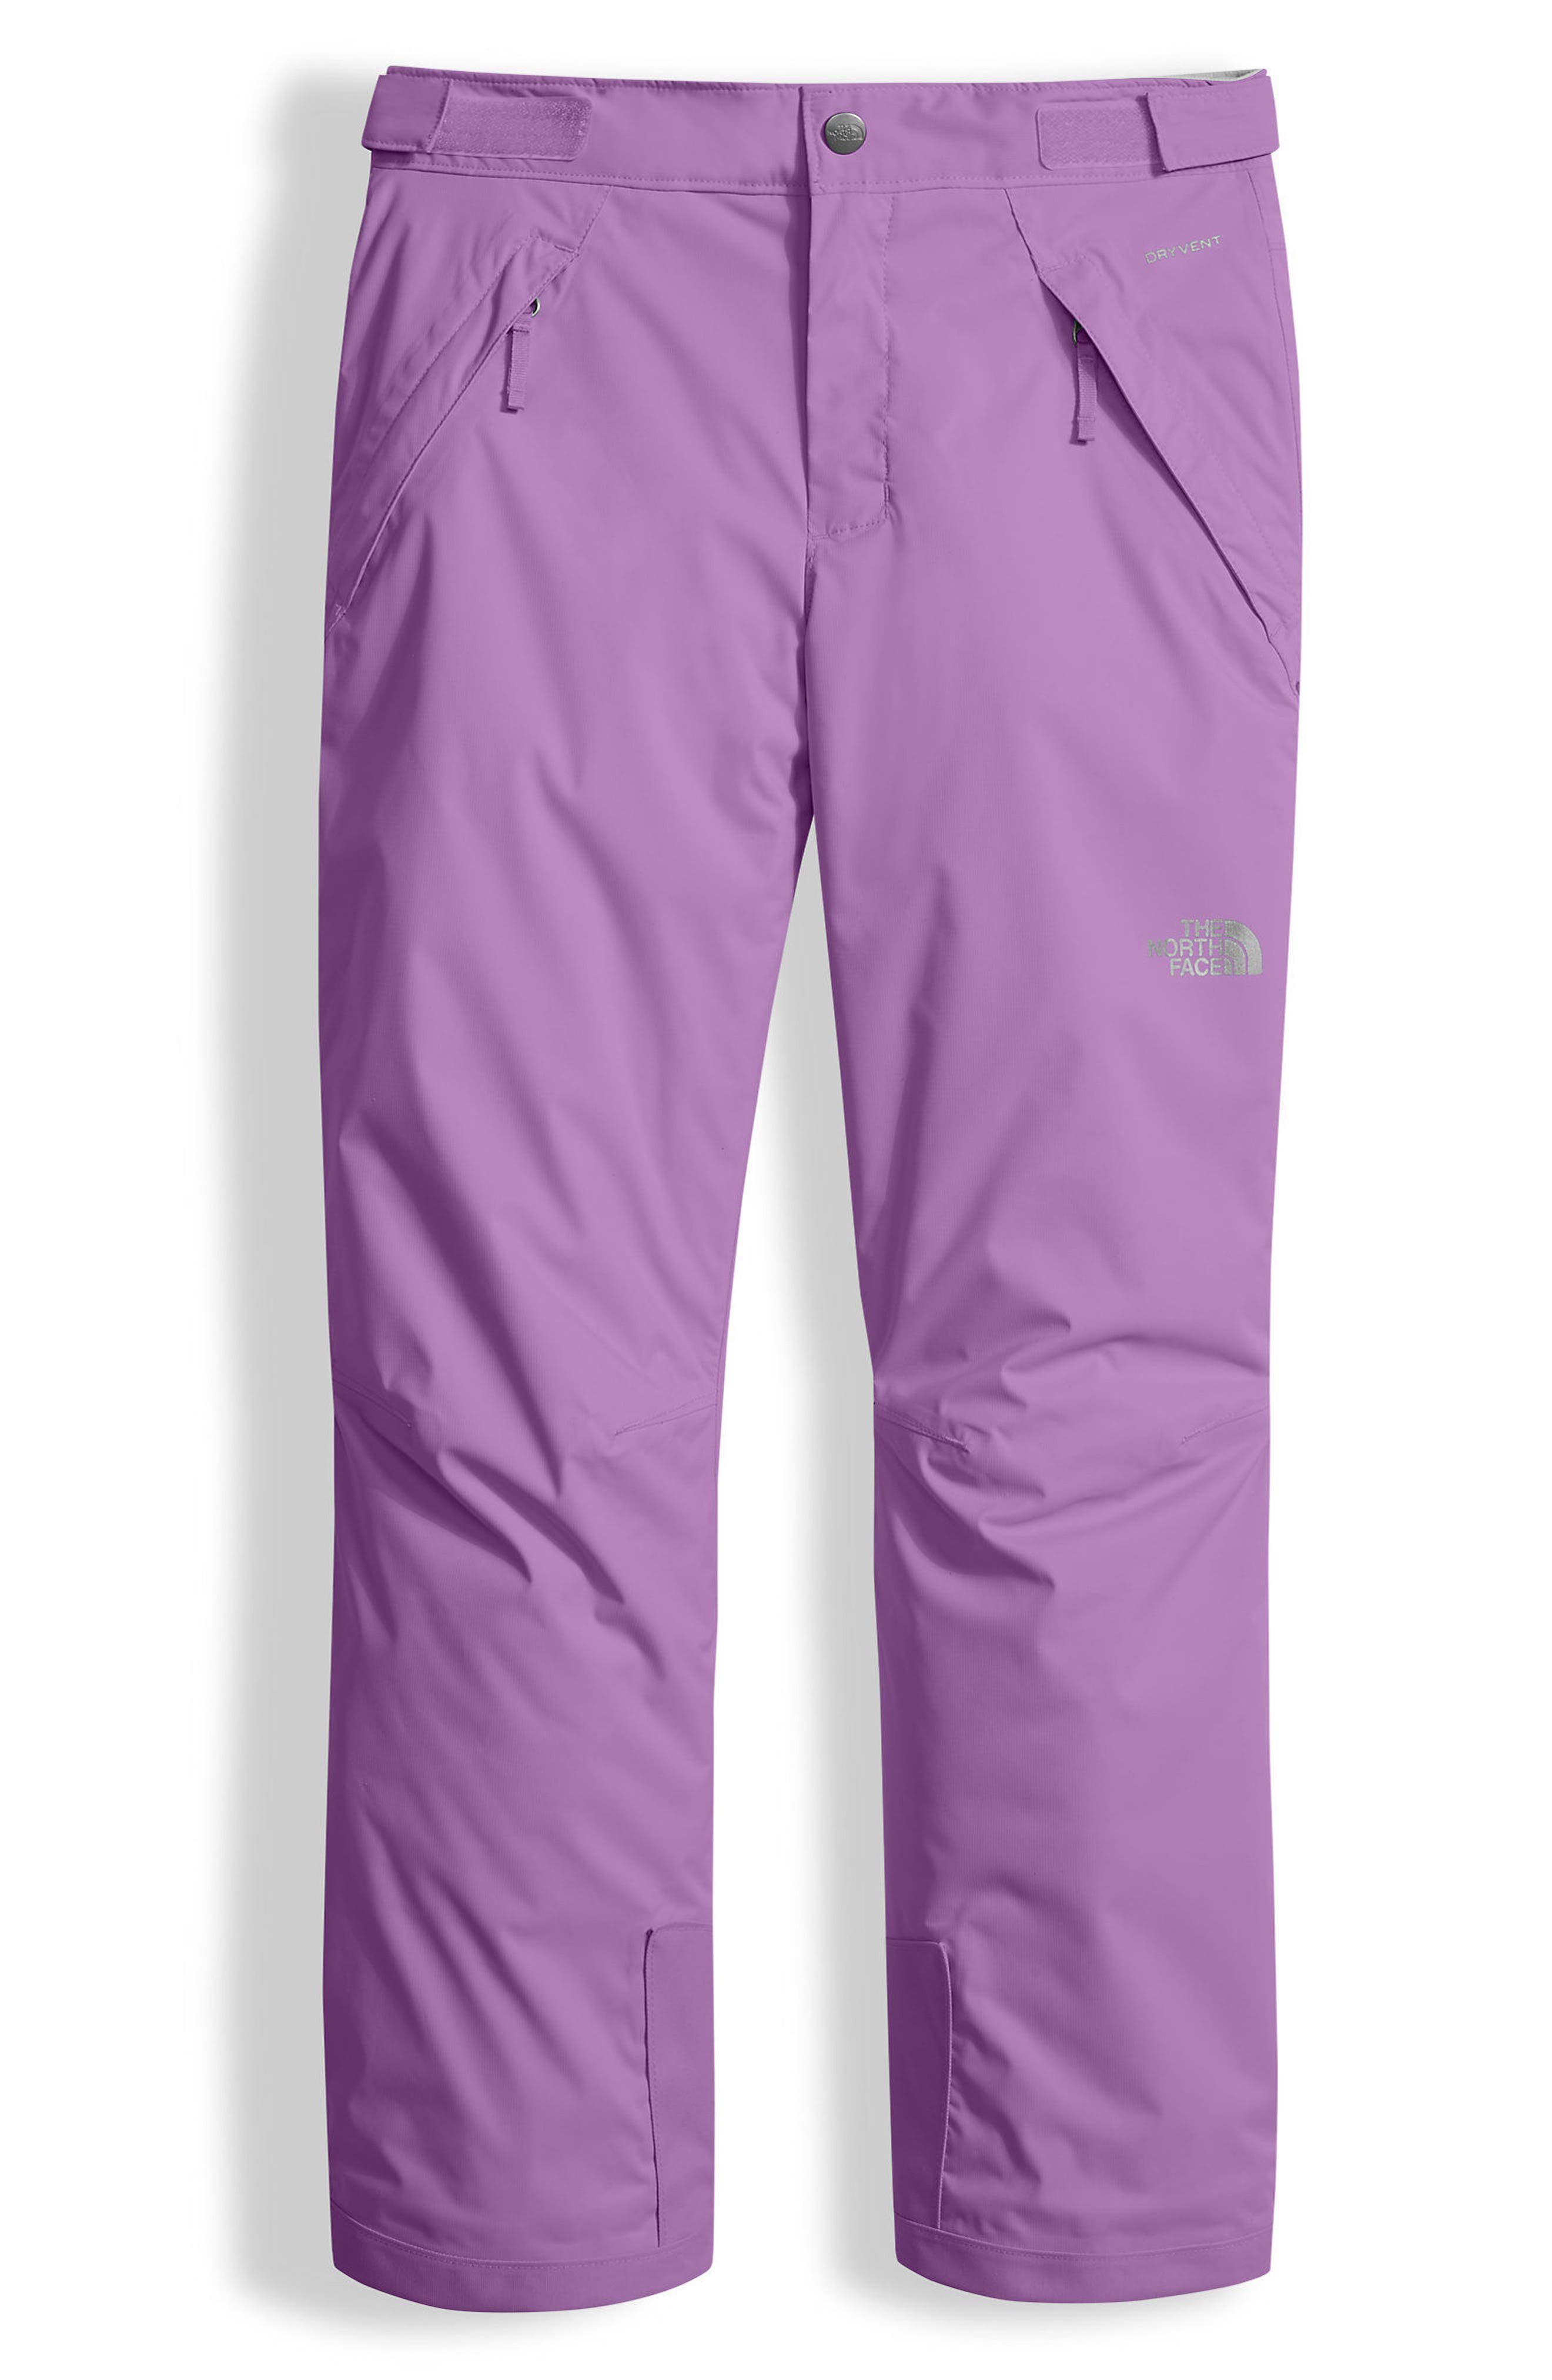 Freedom Waterproof Heatseeker<sup>™</sup> Insulated Snow Pants,                             Main thumbnail 1, color,                             Bellflower Purple